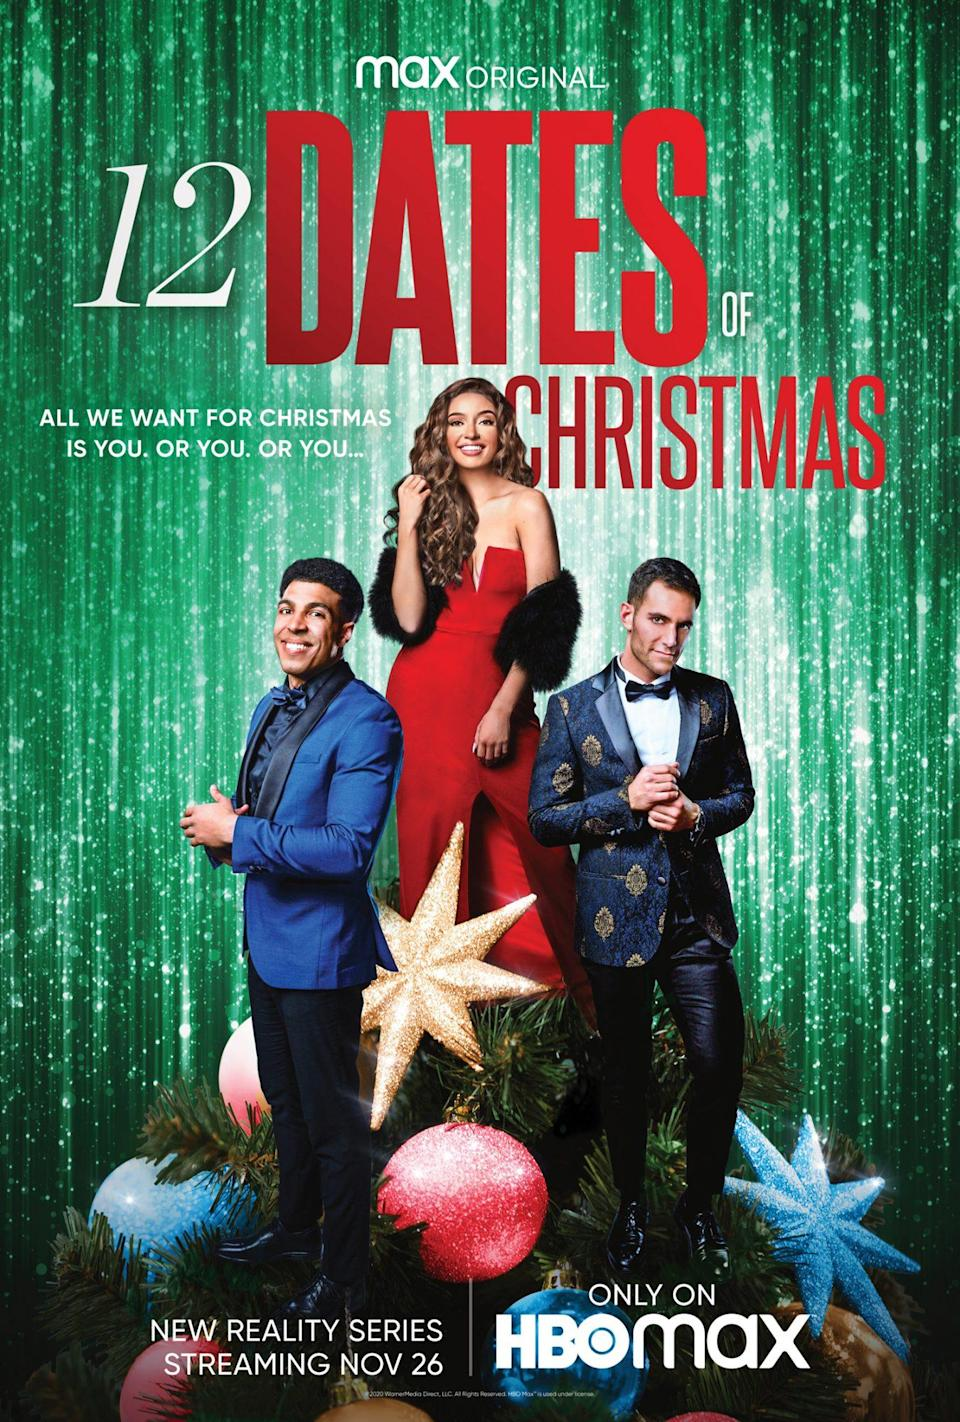 "<p>A seasonal dating show with one end goal: to bring a special someone home for the holidays. I'm surprised the <em>Bachelor</em> franchise didn't come up with this first!</p> <p><em>Stream it on</em> <a href=""https://play.hbomax.com/page/urn:hbo:page:GX6MzzwZycJYSwwEAAALF:type:series?utm_id=sa%7C71700000076575476%7C58700006525808333%7Cp59013857162&gclsrc=aw.ds&&gclid=EAIaIQobChMI1v_PqurQ7QIVoAeICR11zQlEEAAYASAAEgJYbfD_BwE"" rel=""nofollow noopener"" target=""_blank"" data-ylk=""slk:HBO Max"" class=""link rapid-noclick-resp""><em>HBO Max</em></a>. </p>"